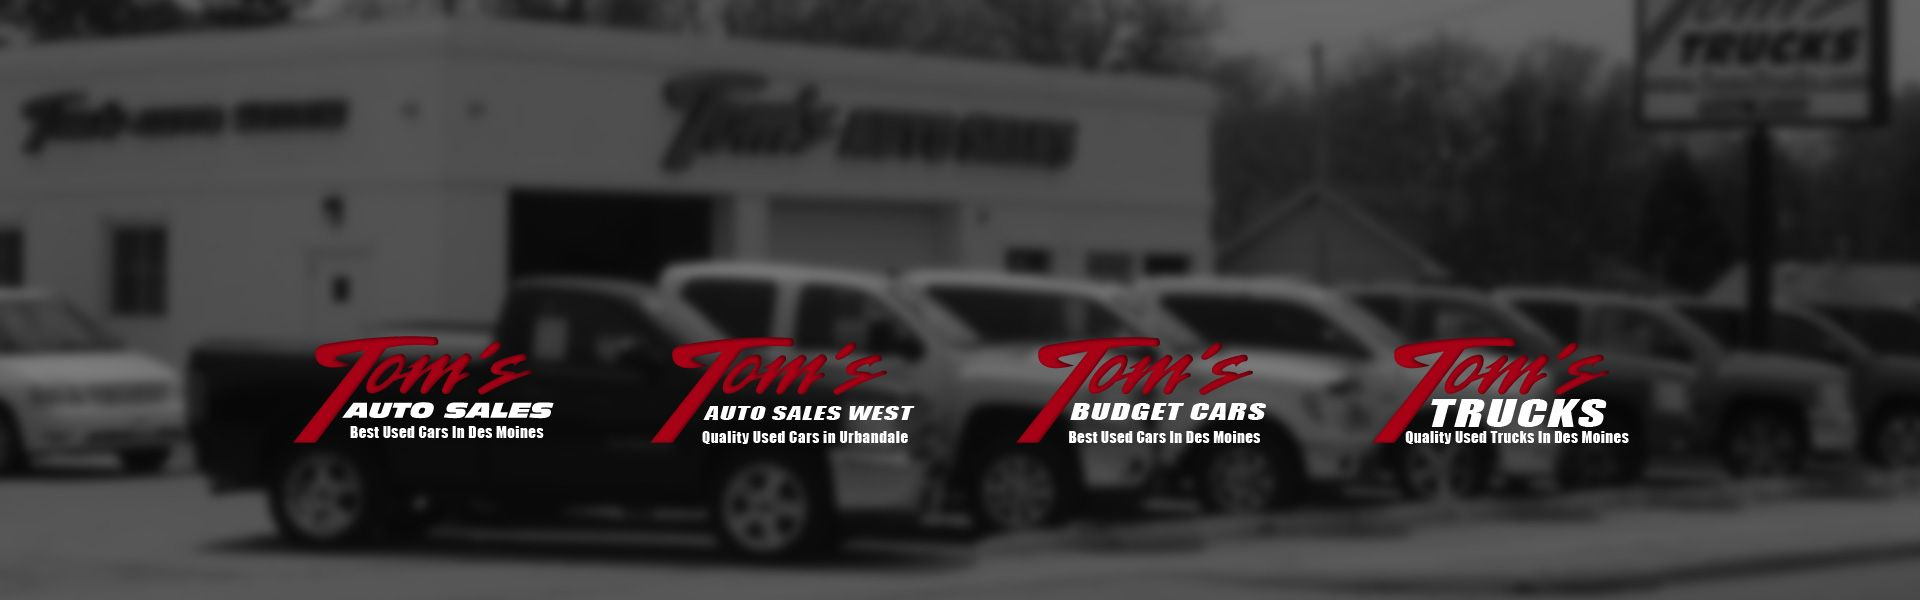 Used Car Dealerships In Des Moines >> Used Car Dealer In Des Moines Ia Tom S Auto Group